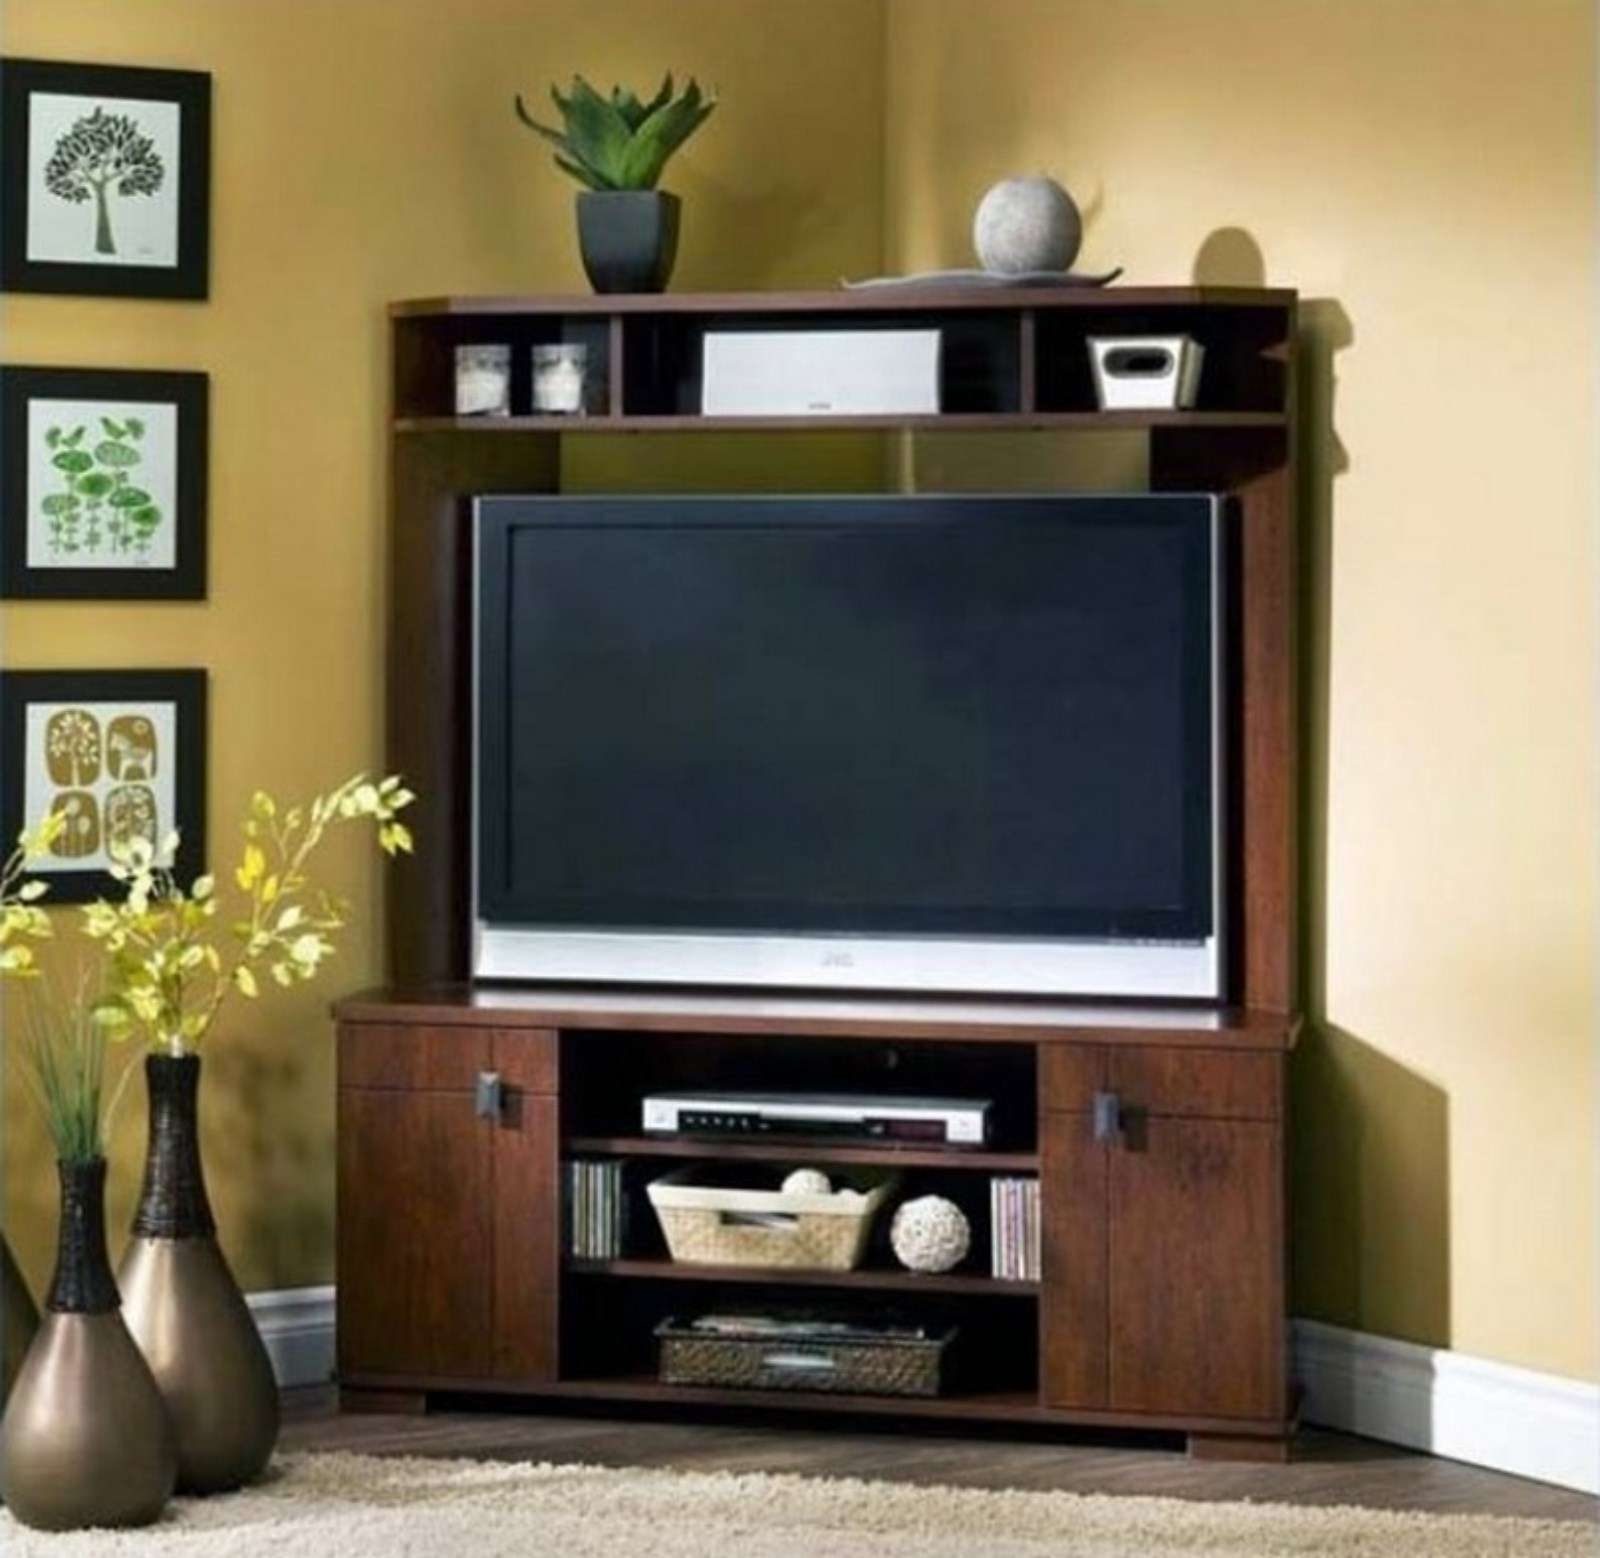 Tv Stand : 32 Unusual 55 Inch Corner Tv Stand With Mount Images Within Corner 55 Inch Tv Stands (View 12 of 15)